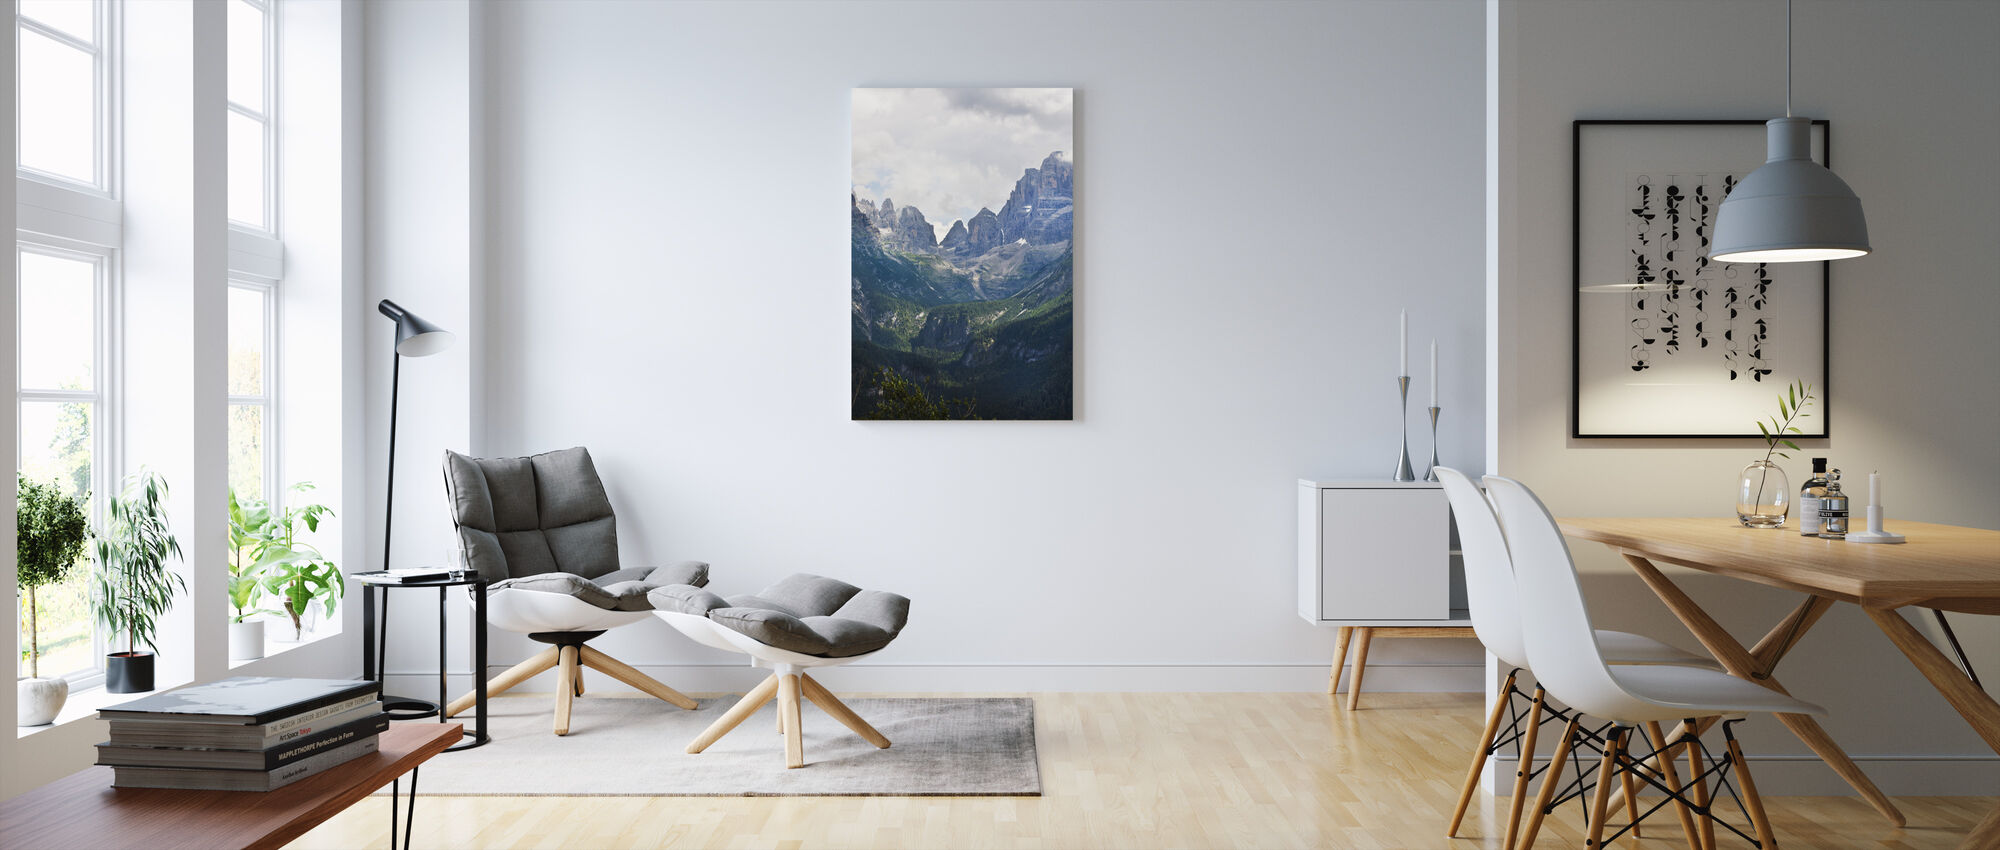 Madonna di Campiglio, Italy, Europe - Canvas print - Living Room